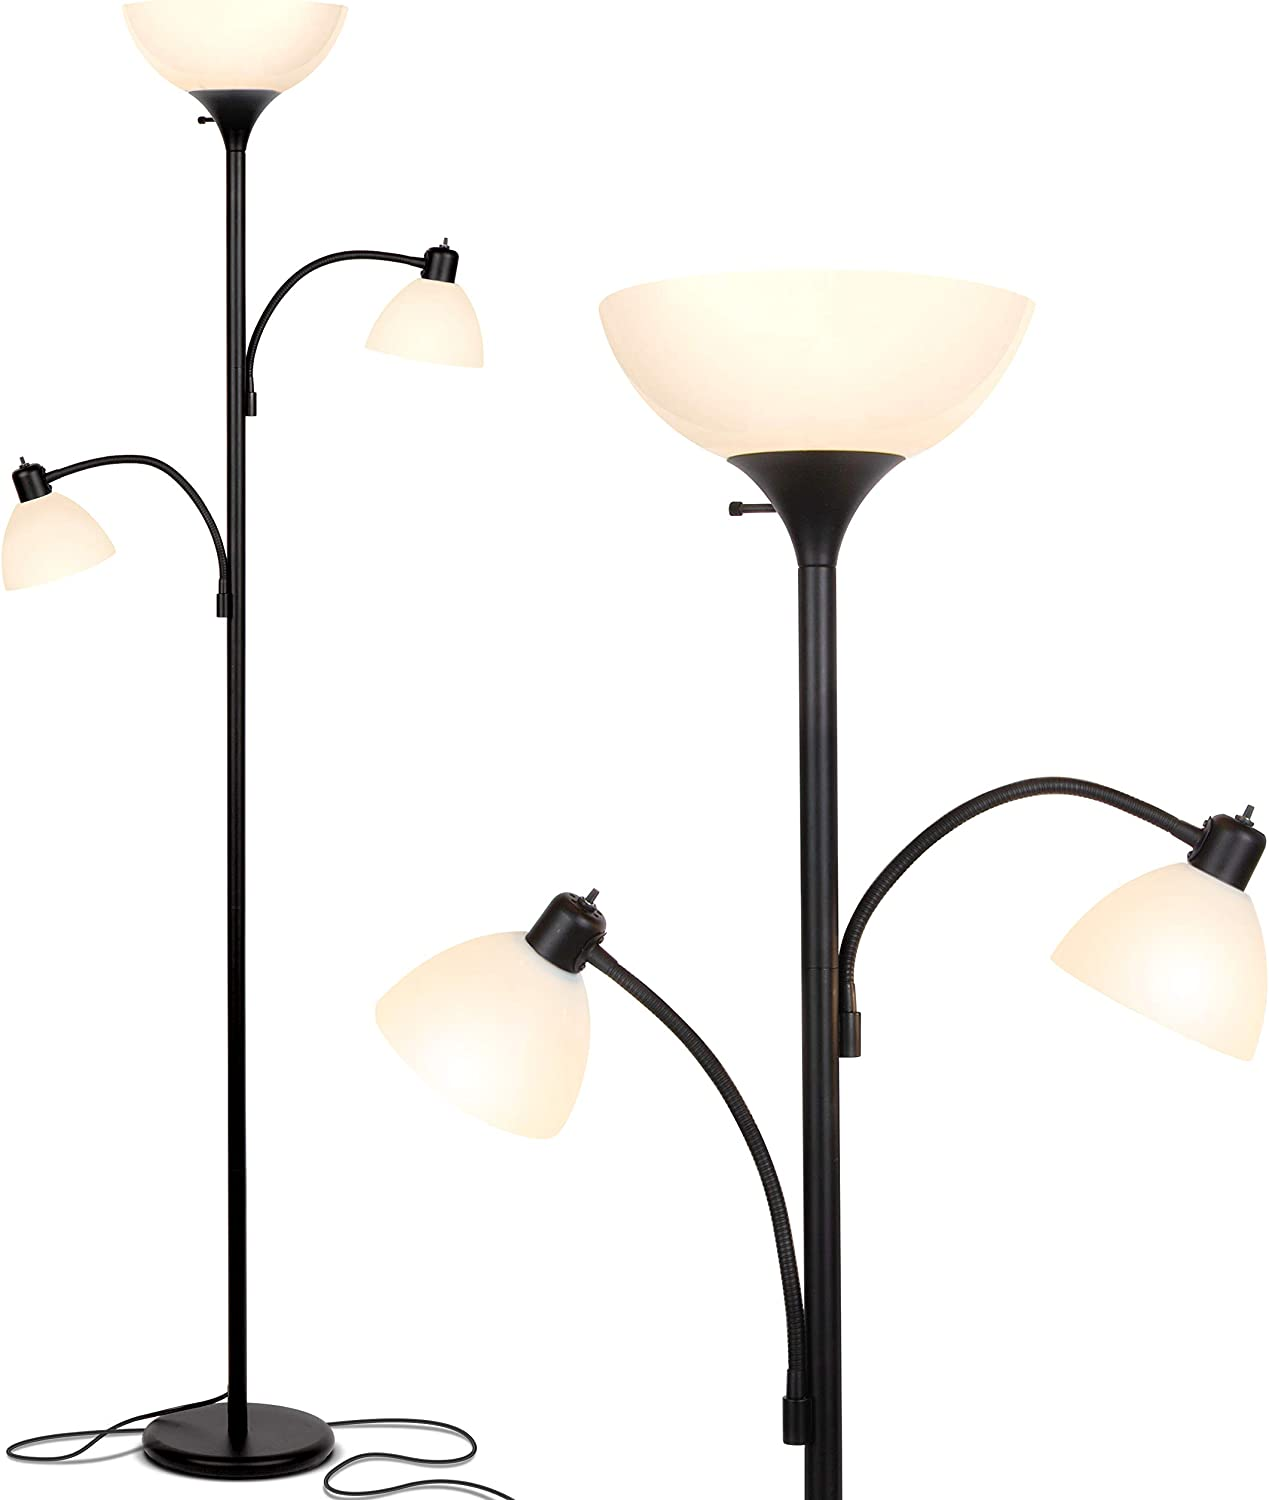 Brightech Sky Dome Double – High Brightness Torchiere Floor Lamp with 2 Reading Lights for Living Rooms, Bedrooms – Replace Halogen Standing Lamps with Efficient LED Office Lighting - Tall Black Pole